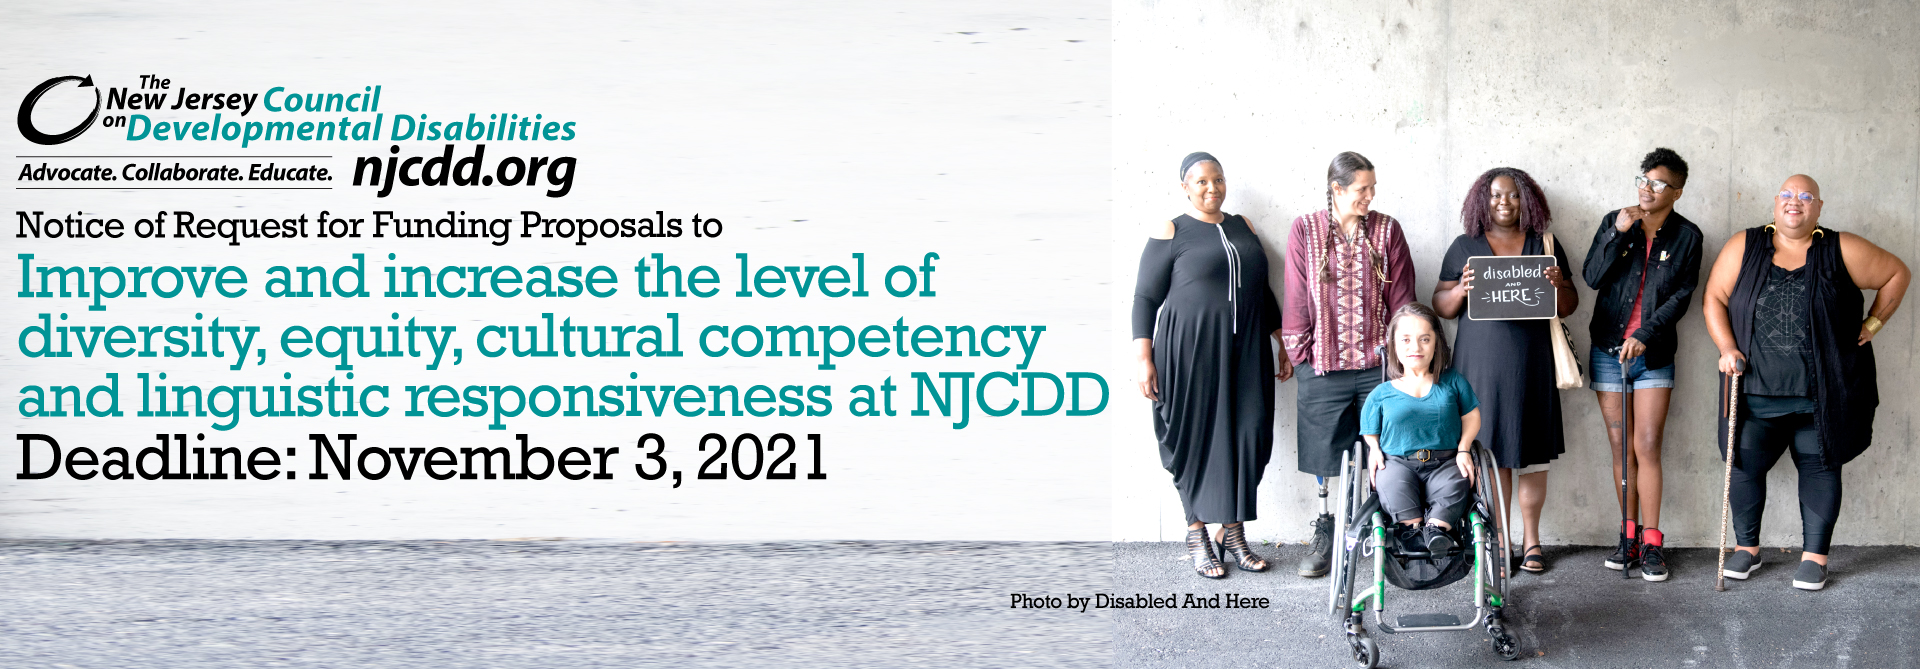 Notice-of-RFP-to-improve-and-increase-the-level-of-diversity,-equity,-cultural-competency-and-linguistic-responsiveness-at-NJCDD